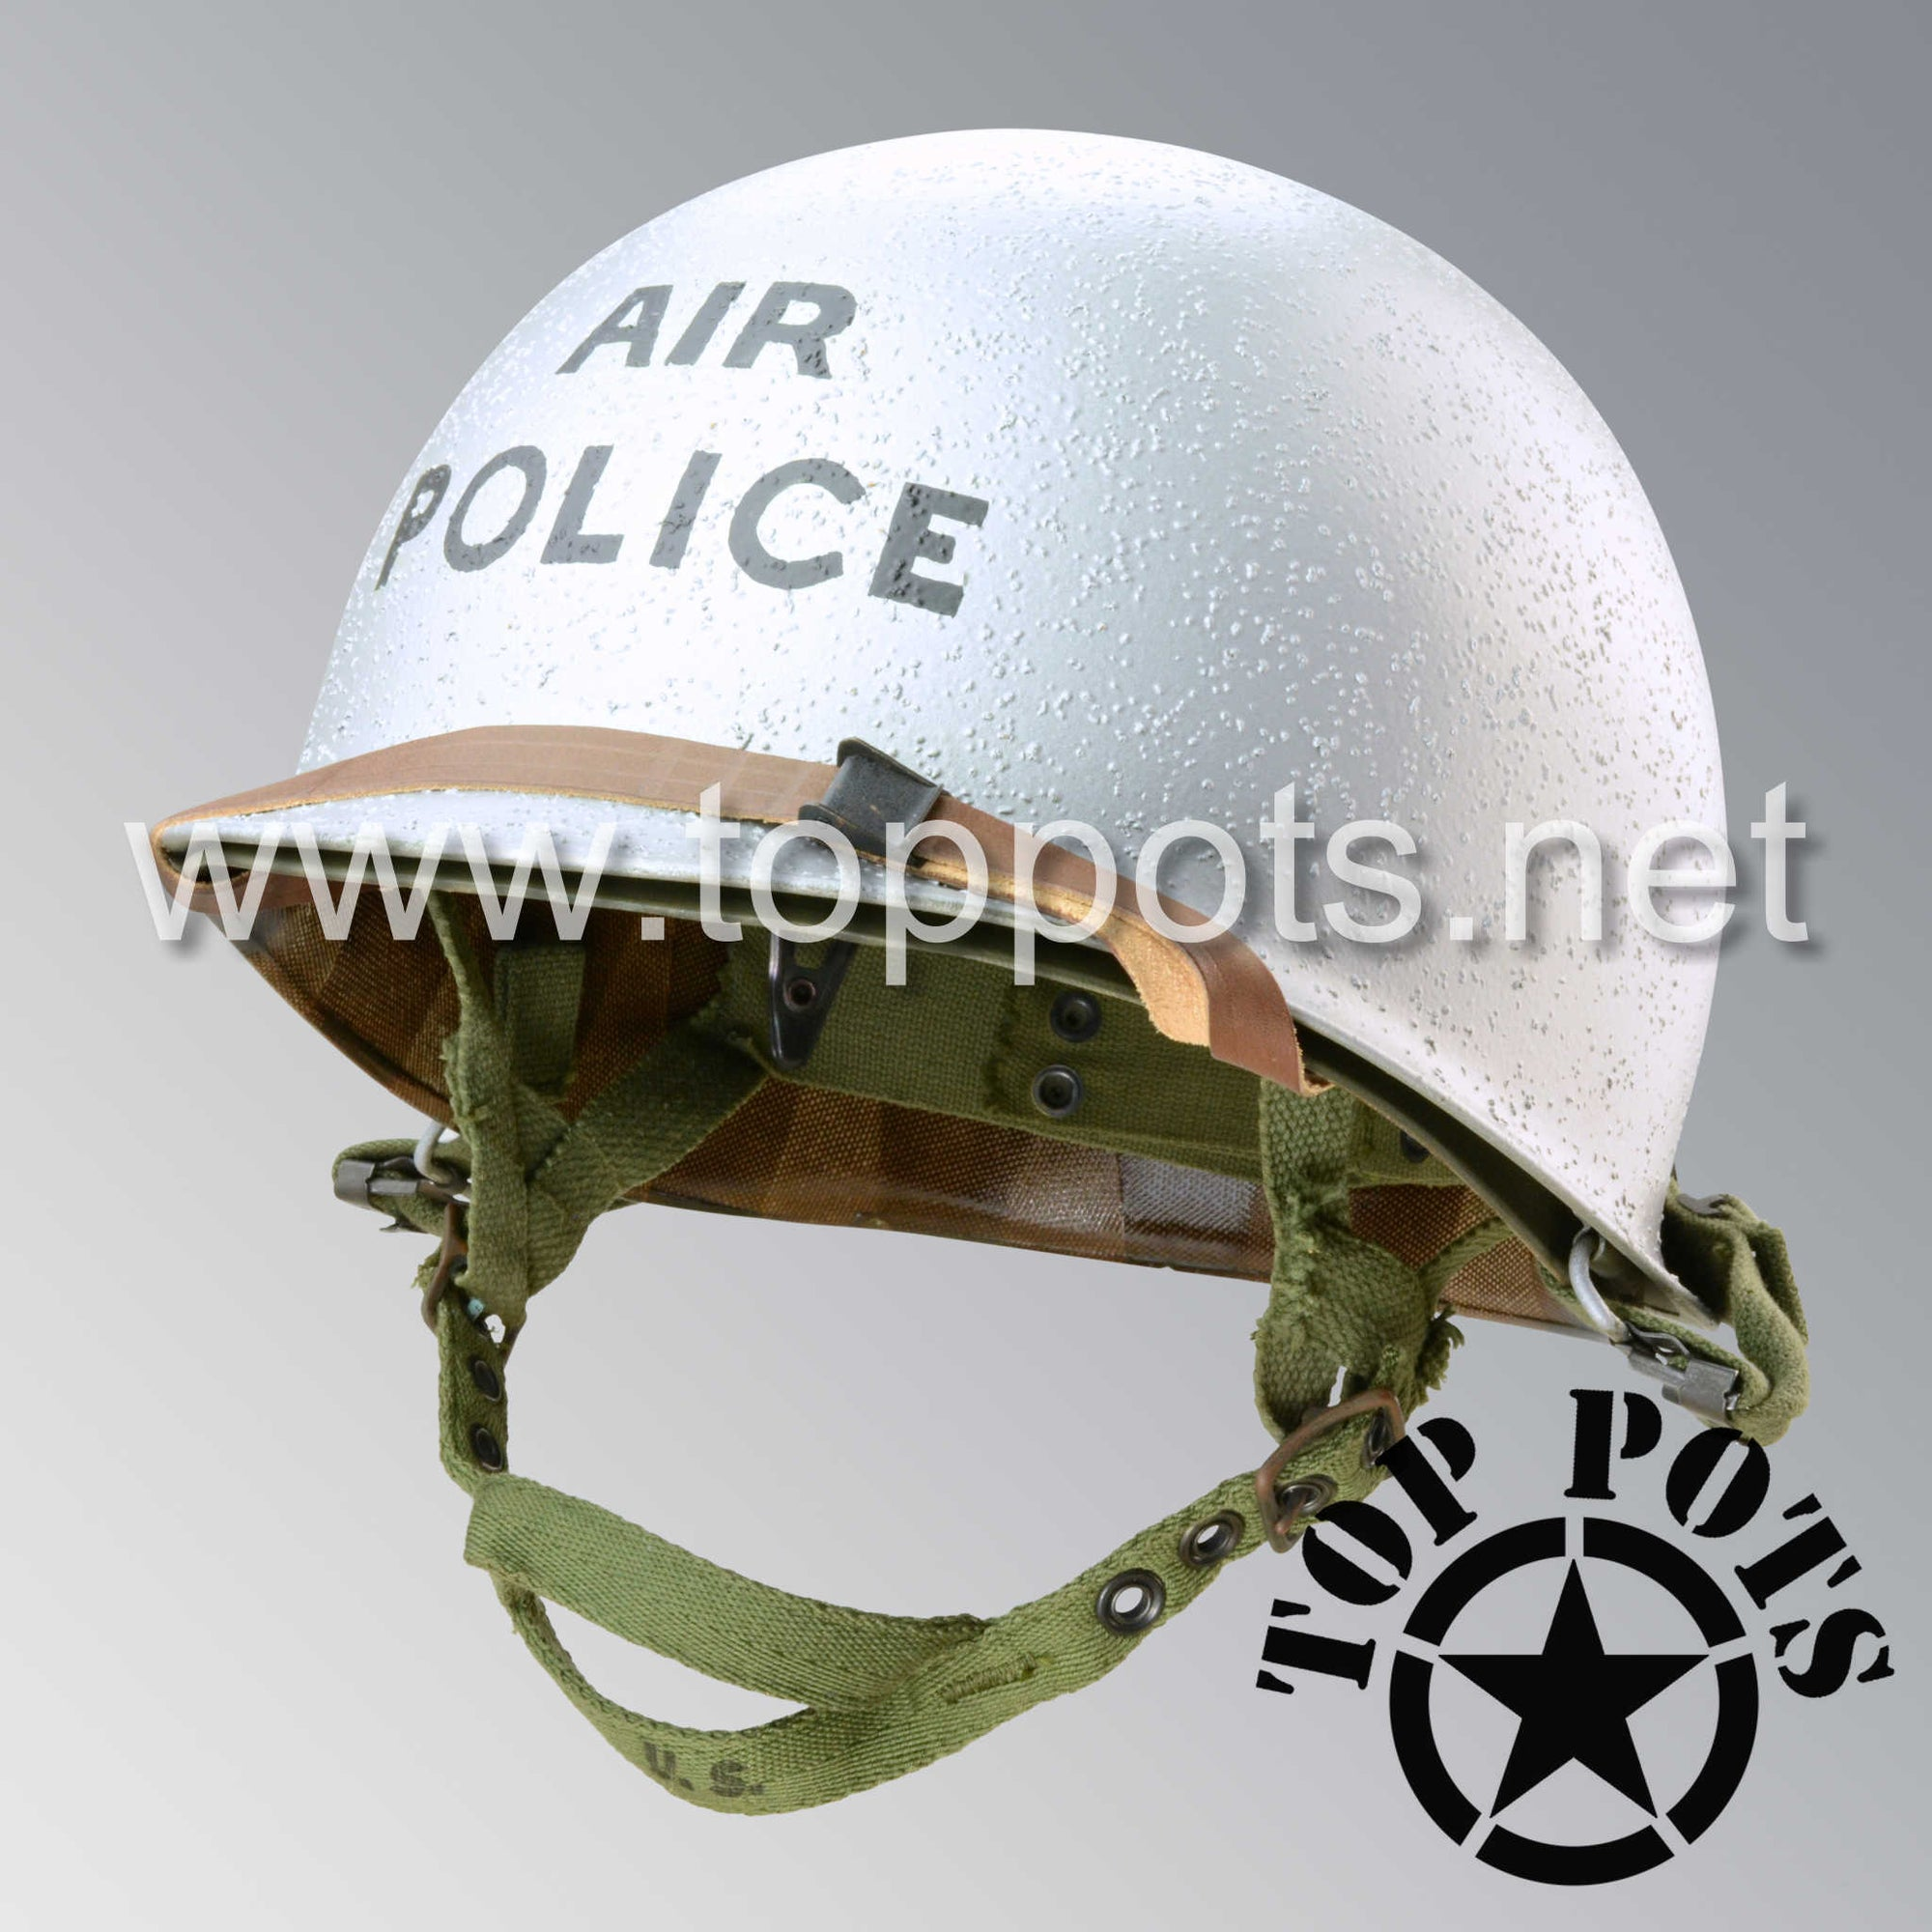 Image 1 of Vietnam War US Army Restored Original P55 M1C Paratrooper Airborne Helmet Swivel Bale Shell and Liner with USAF Air Police Emblem